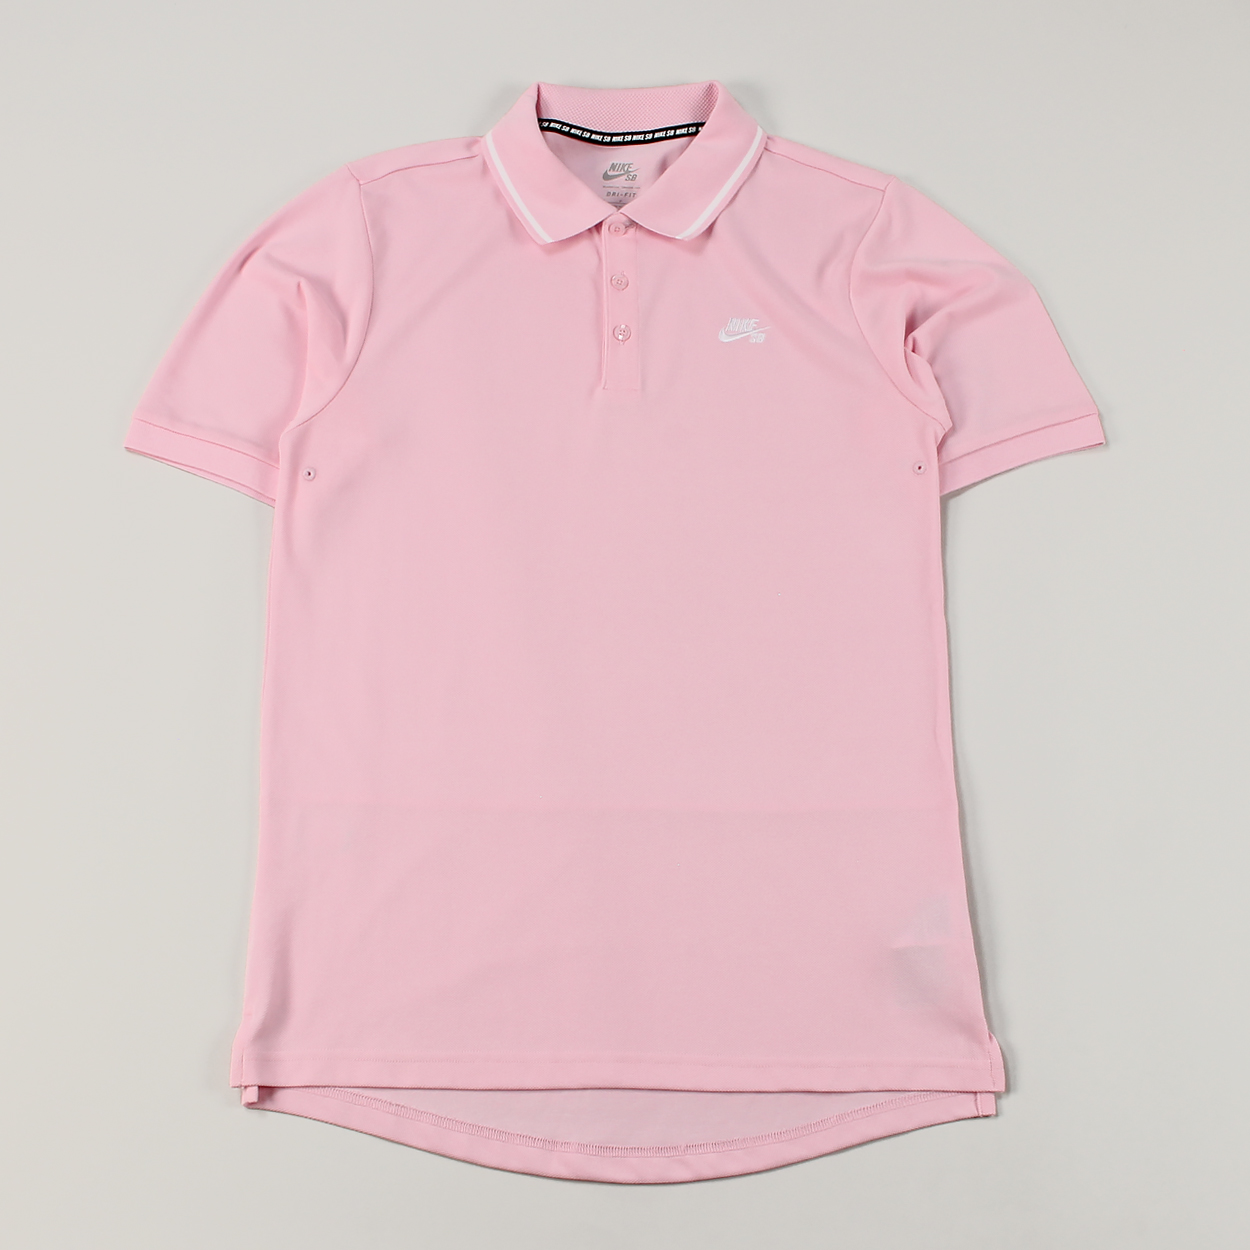 Nike SB Dry Pique Material Embroidered Logo Tip Polo Shirt Pink £30.00 3a1cec90268